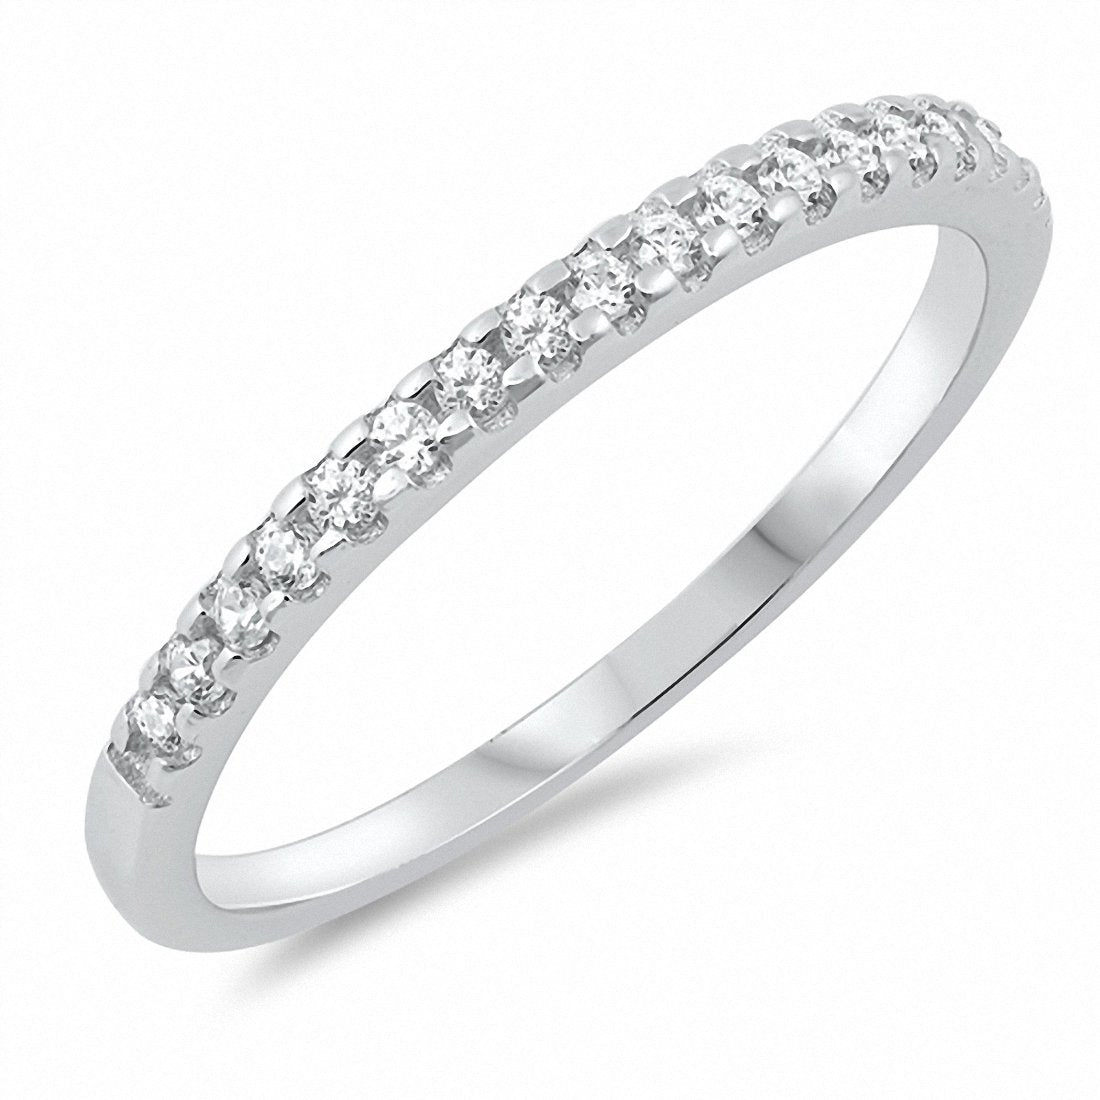 2mm Half Eternity Wedding Band for Ring Round 925 Sterling Silver Choose Color